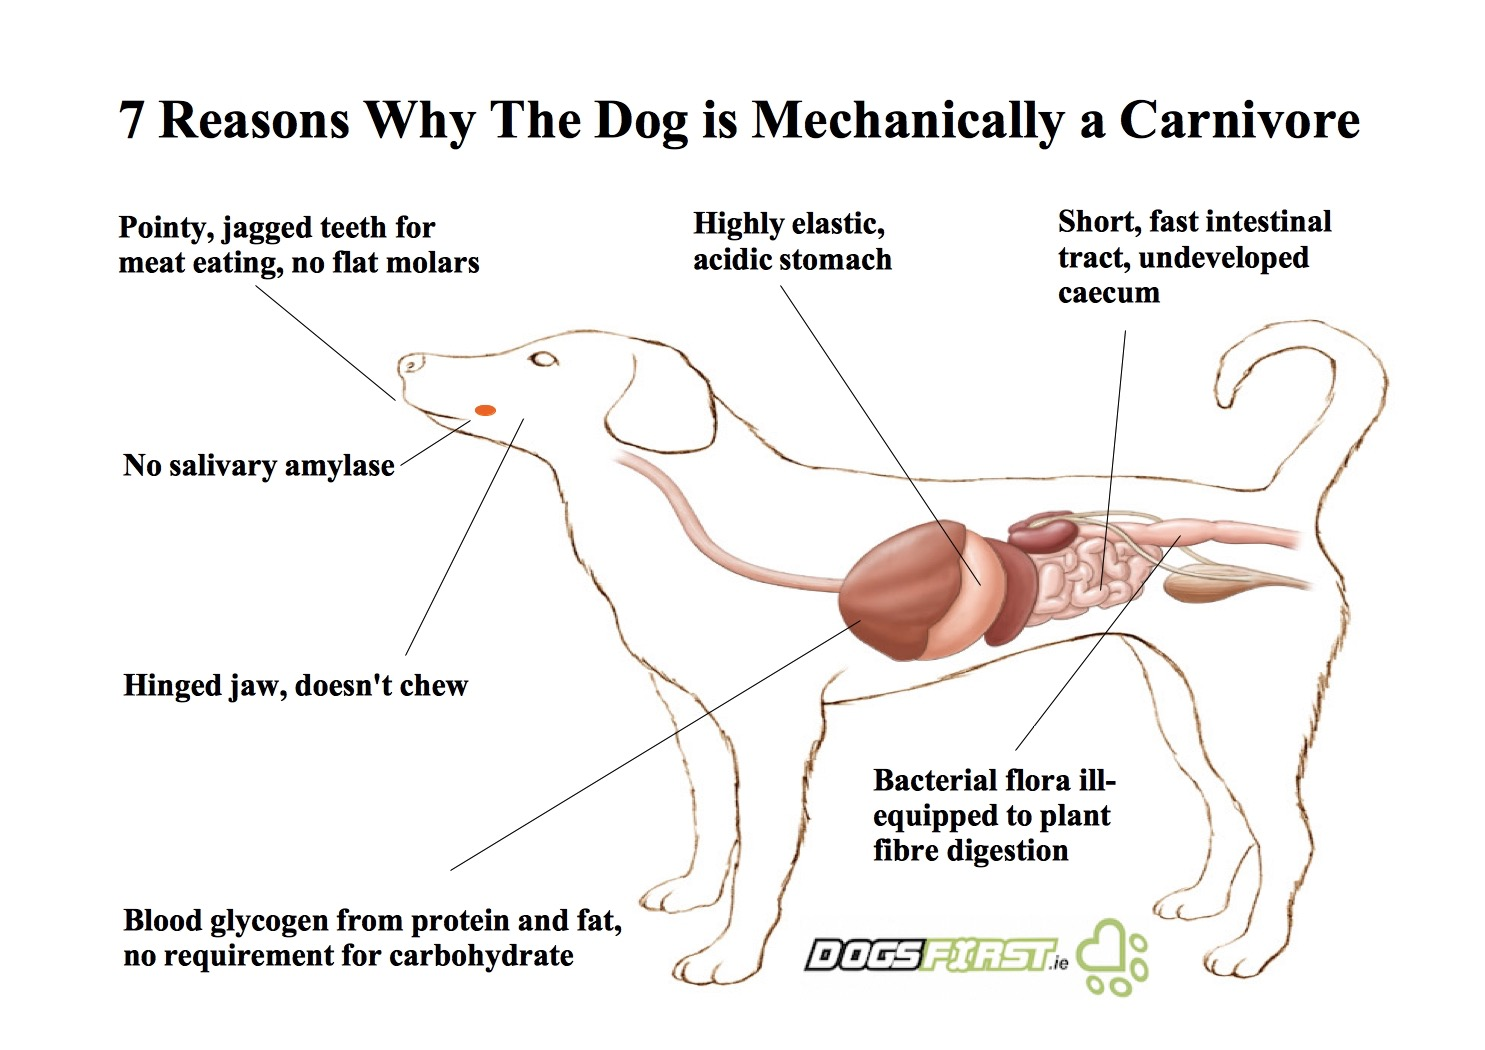 Dog nutrition dogs first a diagram showing 7 reasons why the dog is mechanically a carnivore pooptronica Gallery